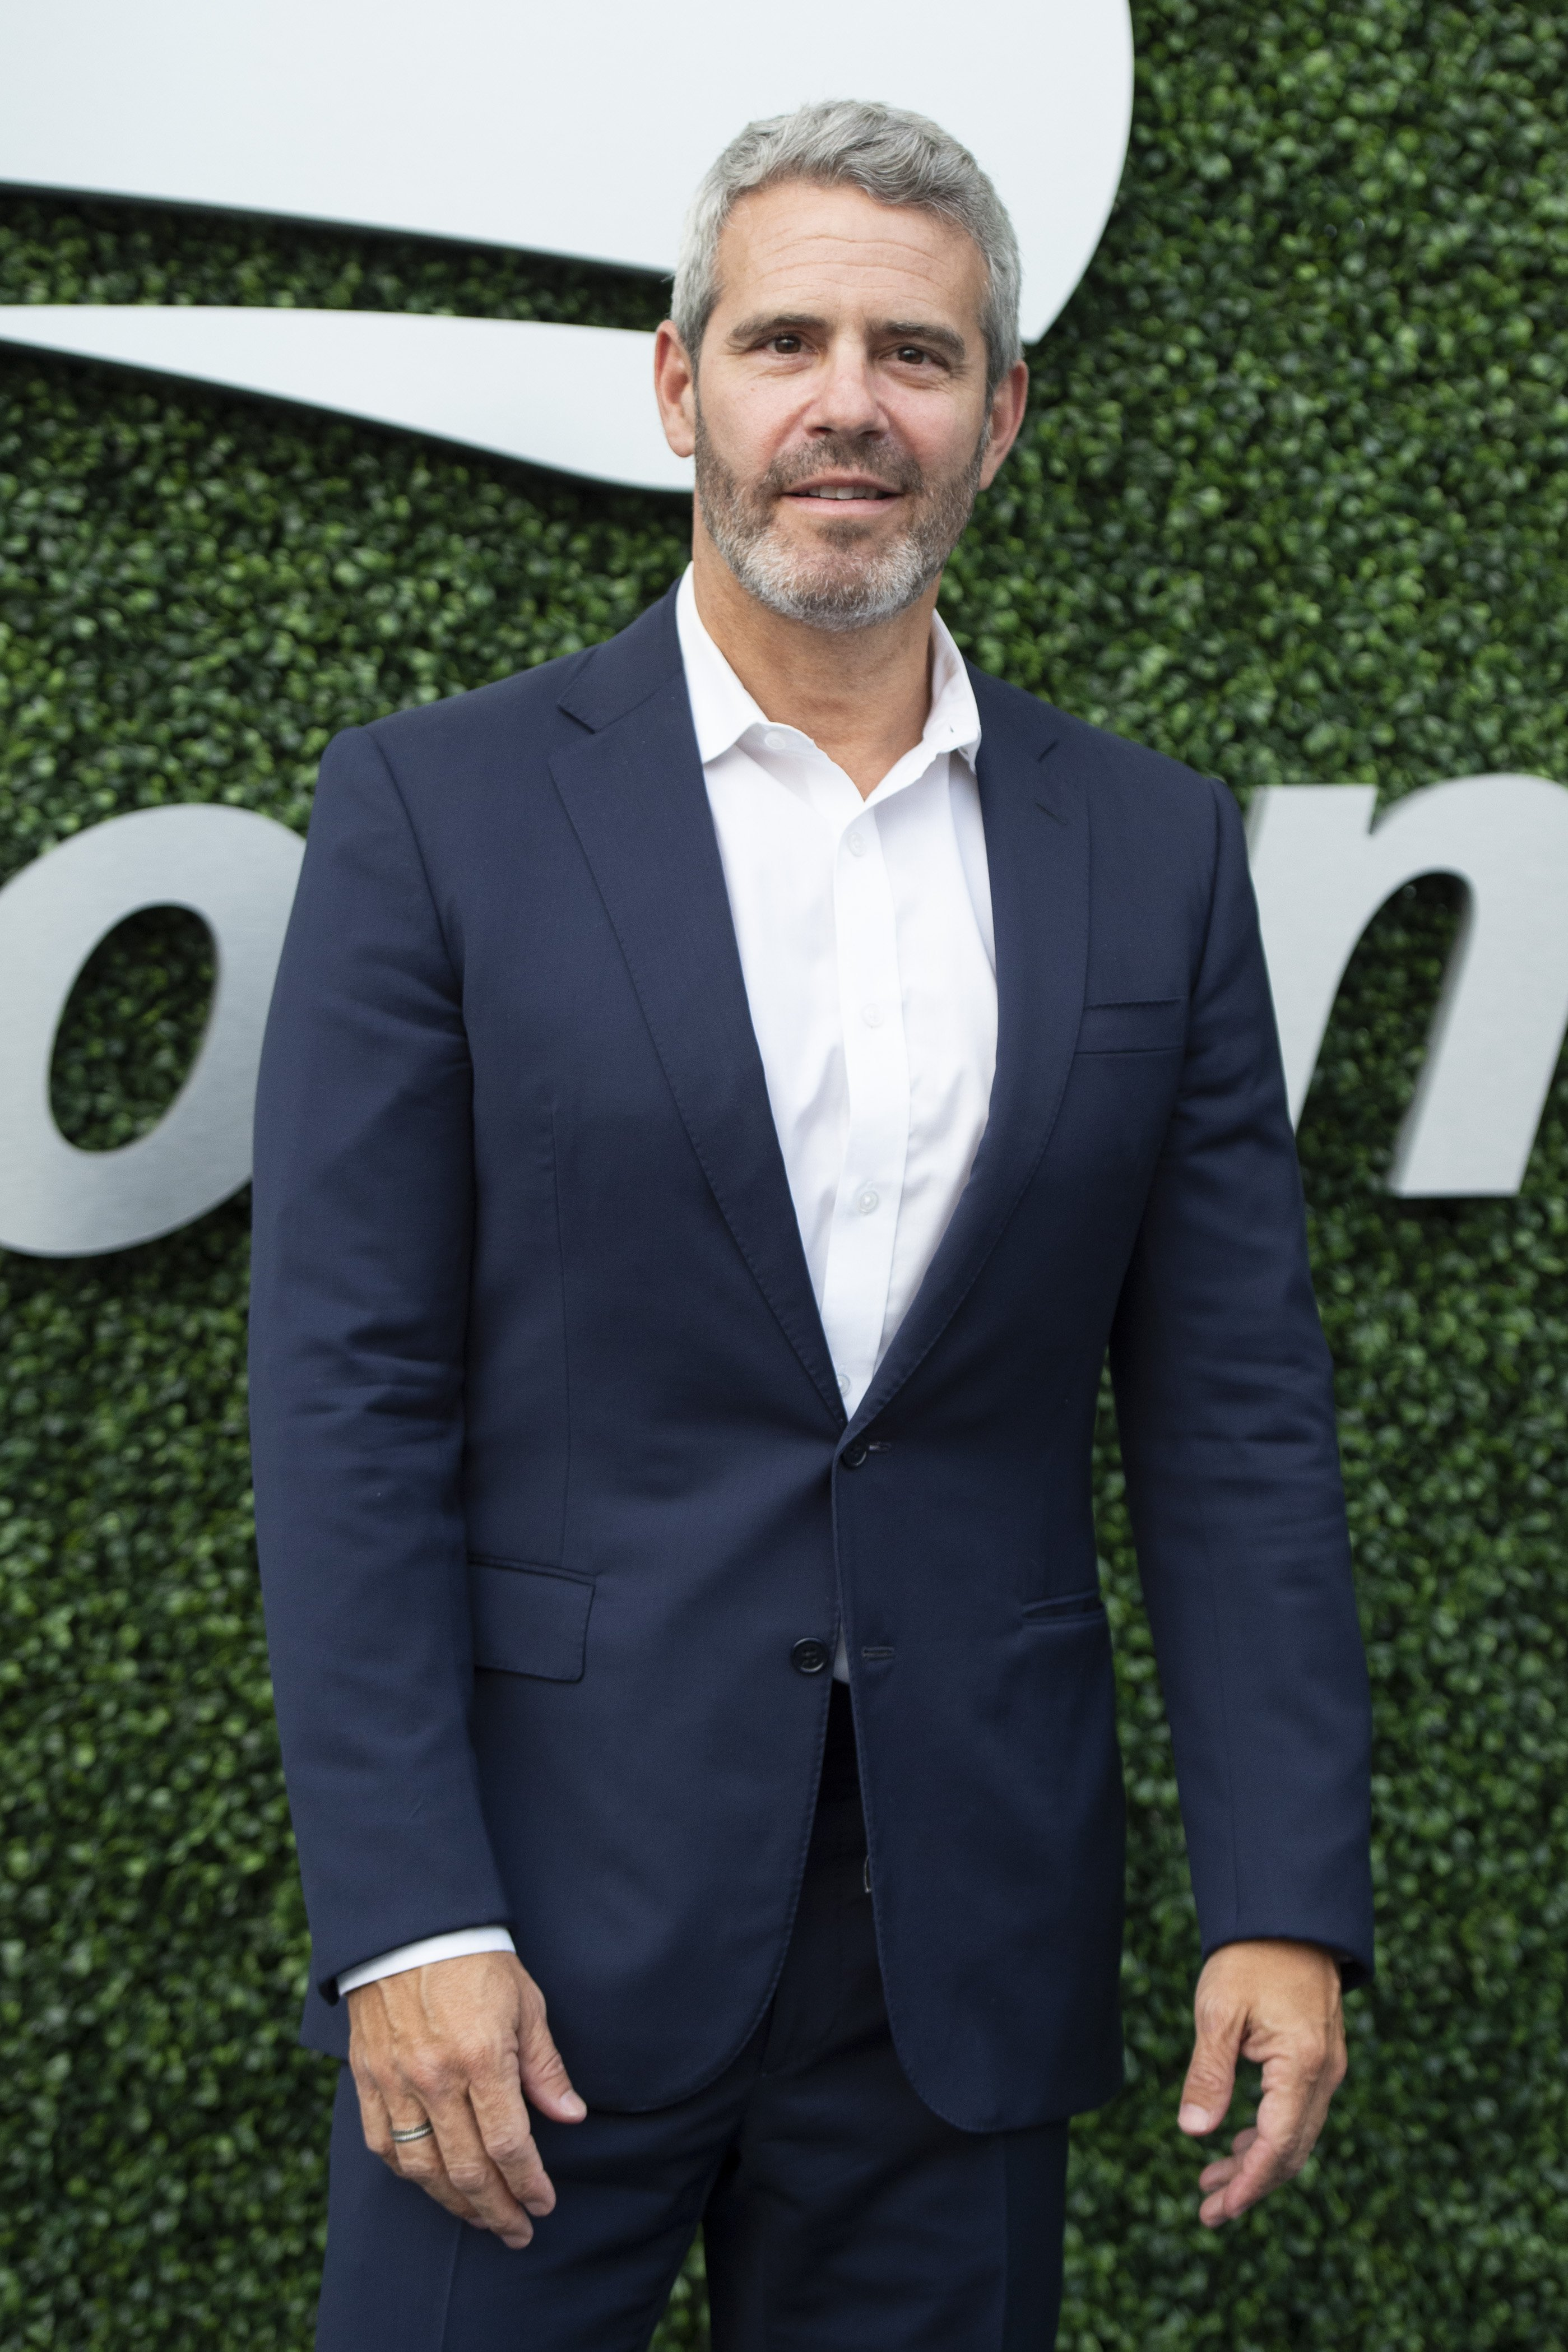 Andy Cohen at the US Open on September 5, 2019 in New York City   Photo: Getty Images